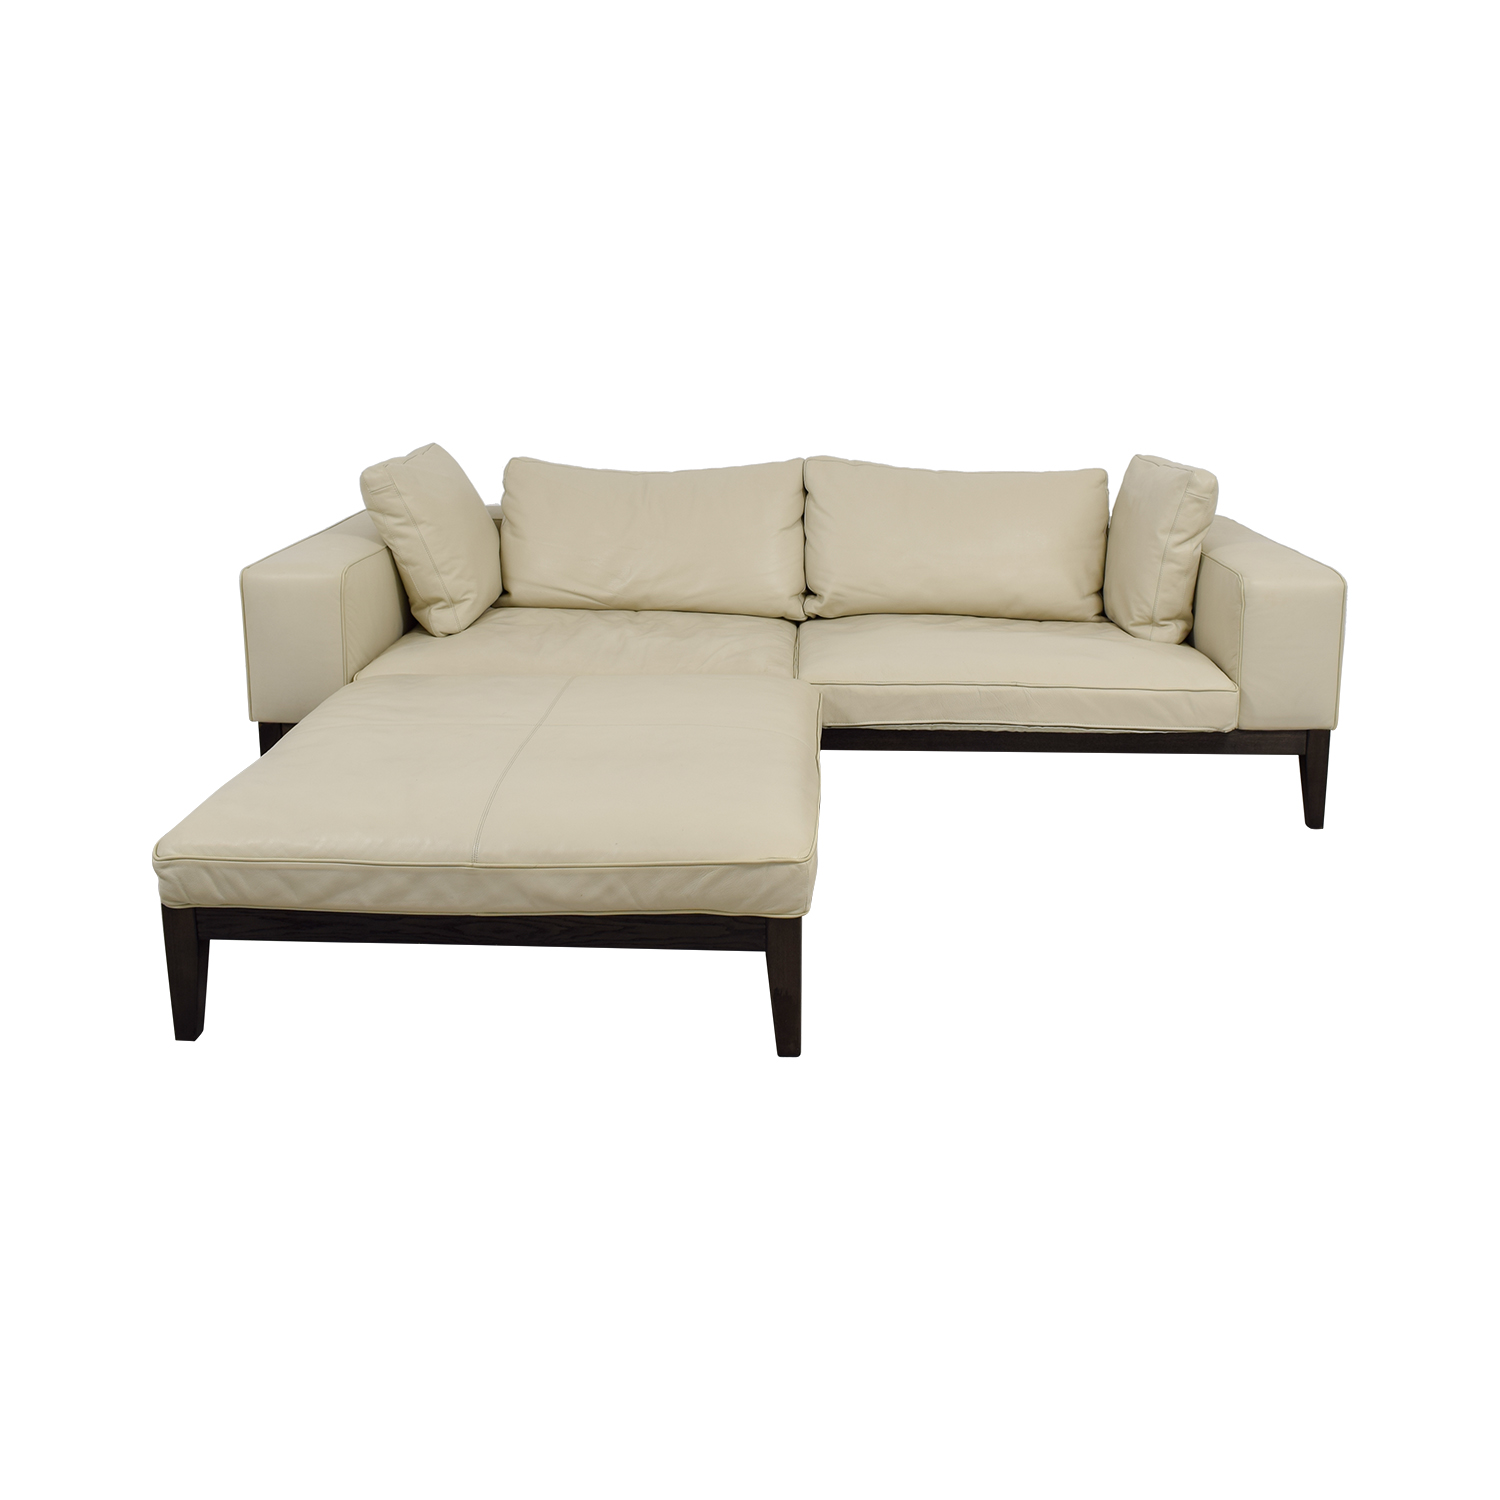 Sensational 90 Off Tree Tree Contemporary Italian Off White Leather Couch With Large Chaise Ottoman Sofas Beatyapartments Chair Design Images Beatyapartmentscom